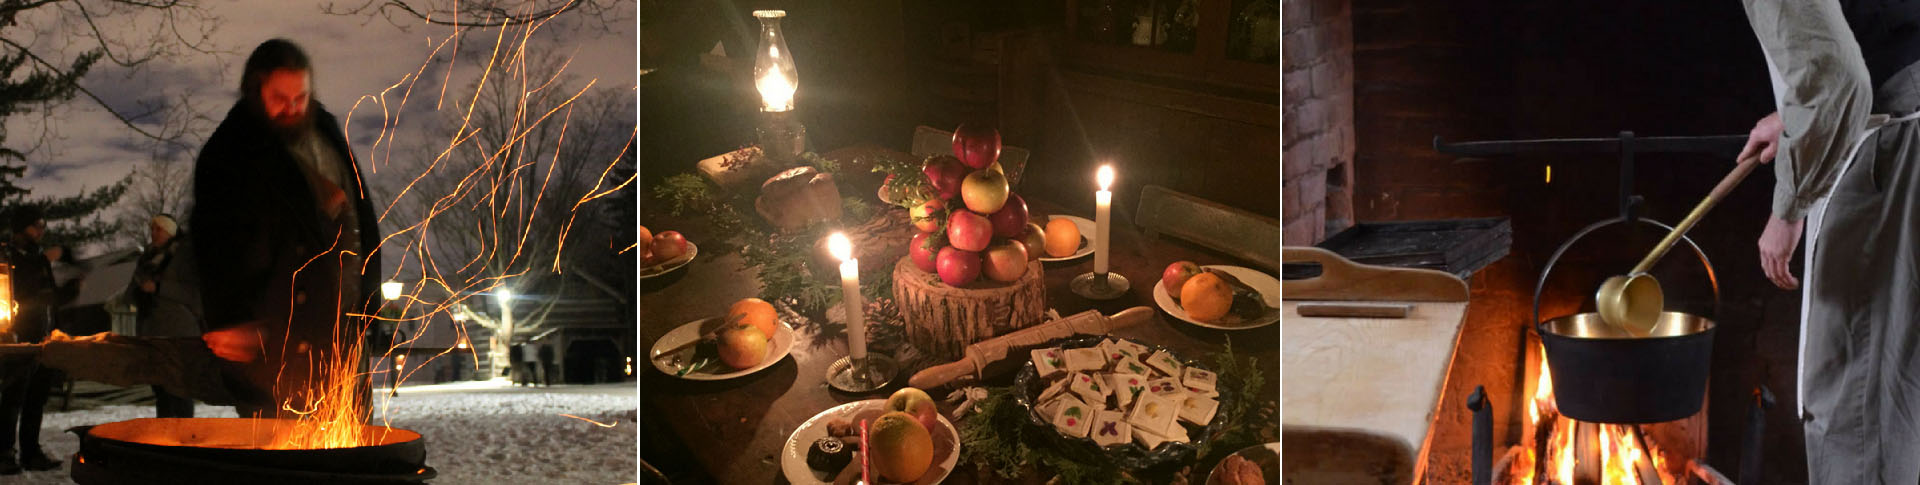 festive treats at Black Creek Pioneer Village Christmas by Lamplight event